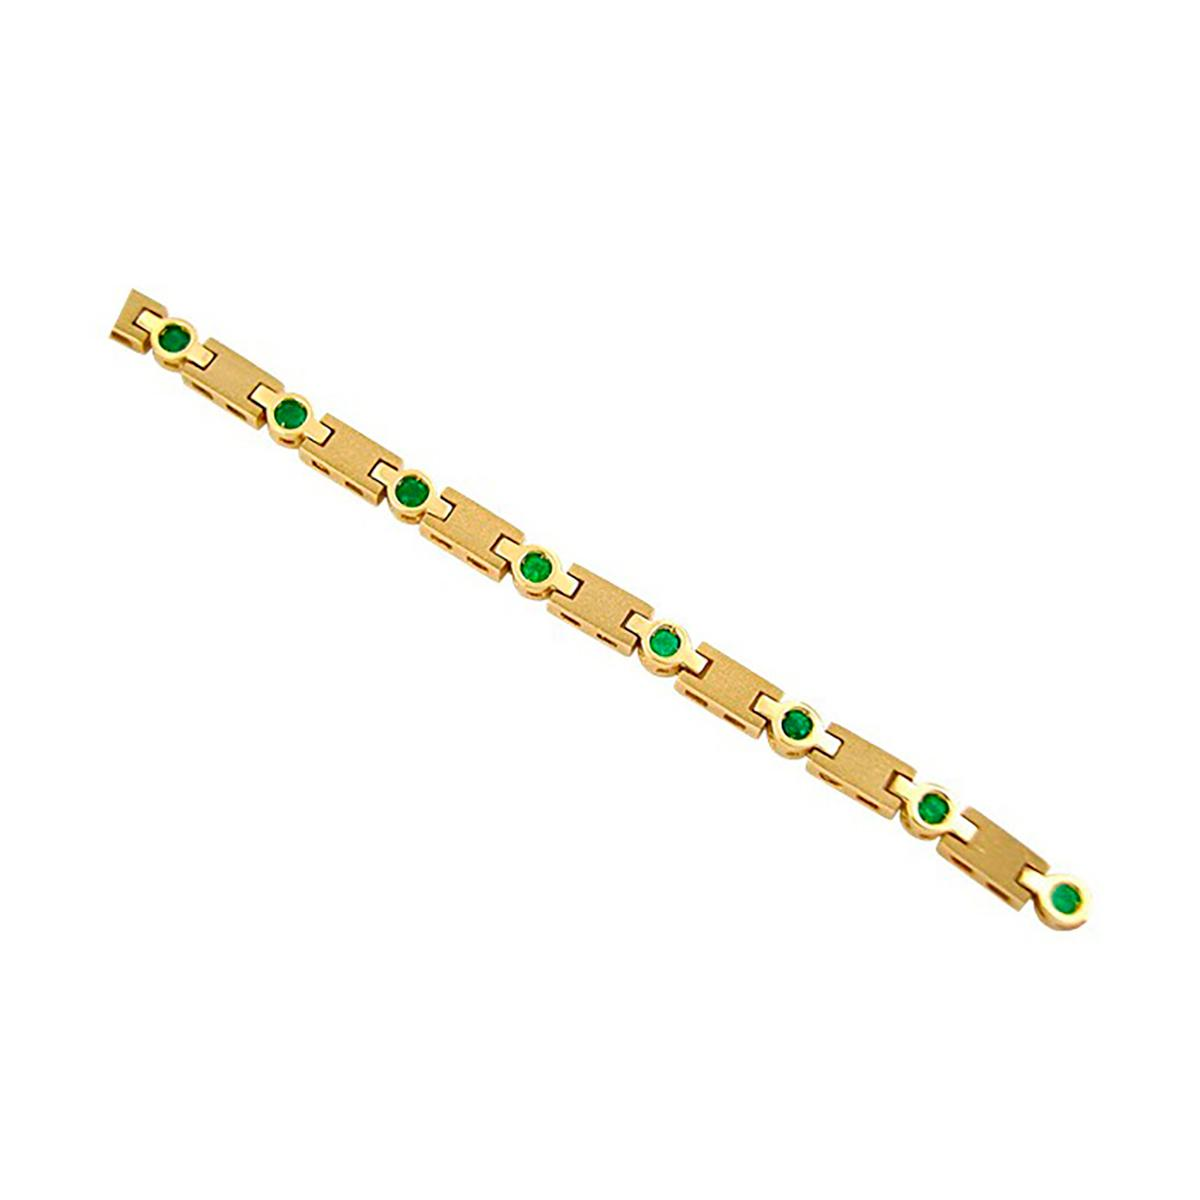 18k-yellow-gold-emerald-bracelet-with-genuine-natural-colombian-emeralds